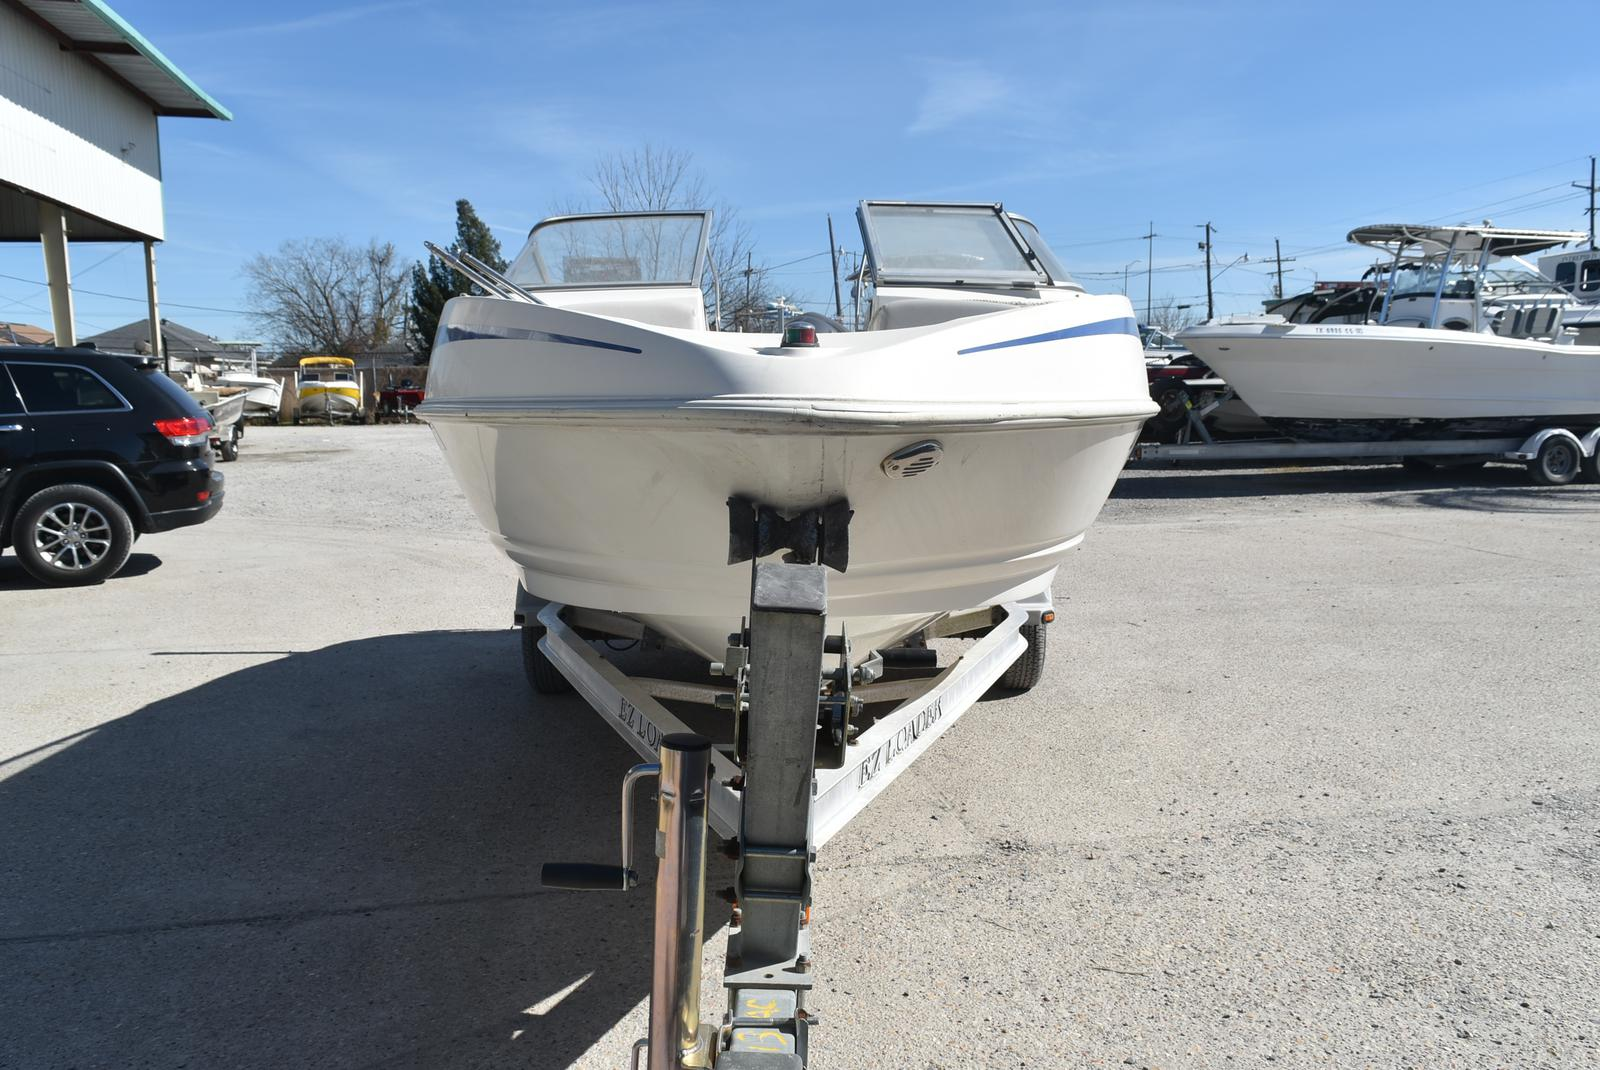 2007 Larson boat for sale, model of the boat is Senza 186 & Image # 10 of 15